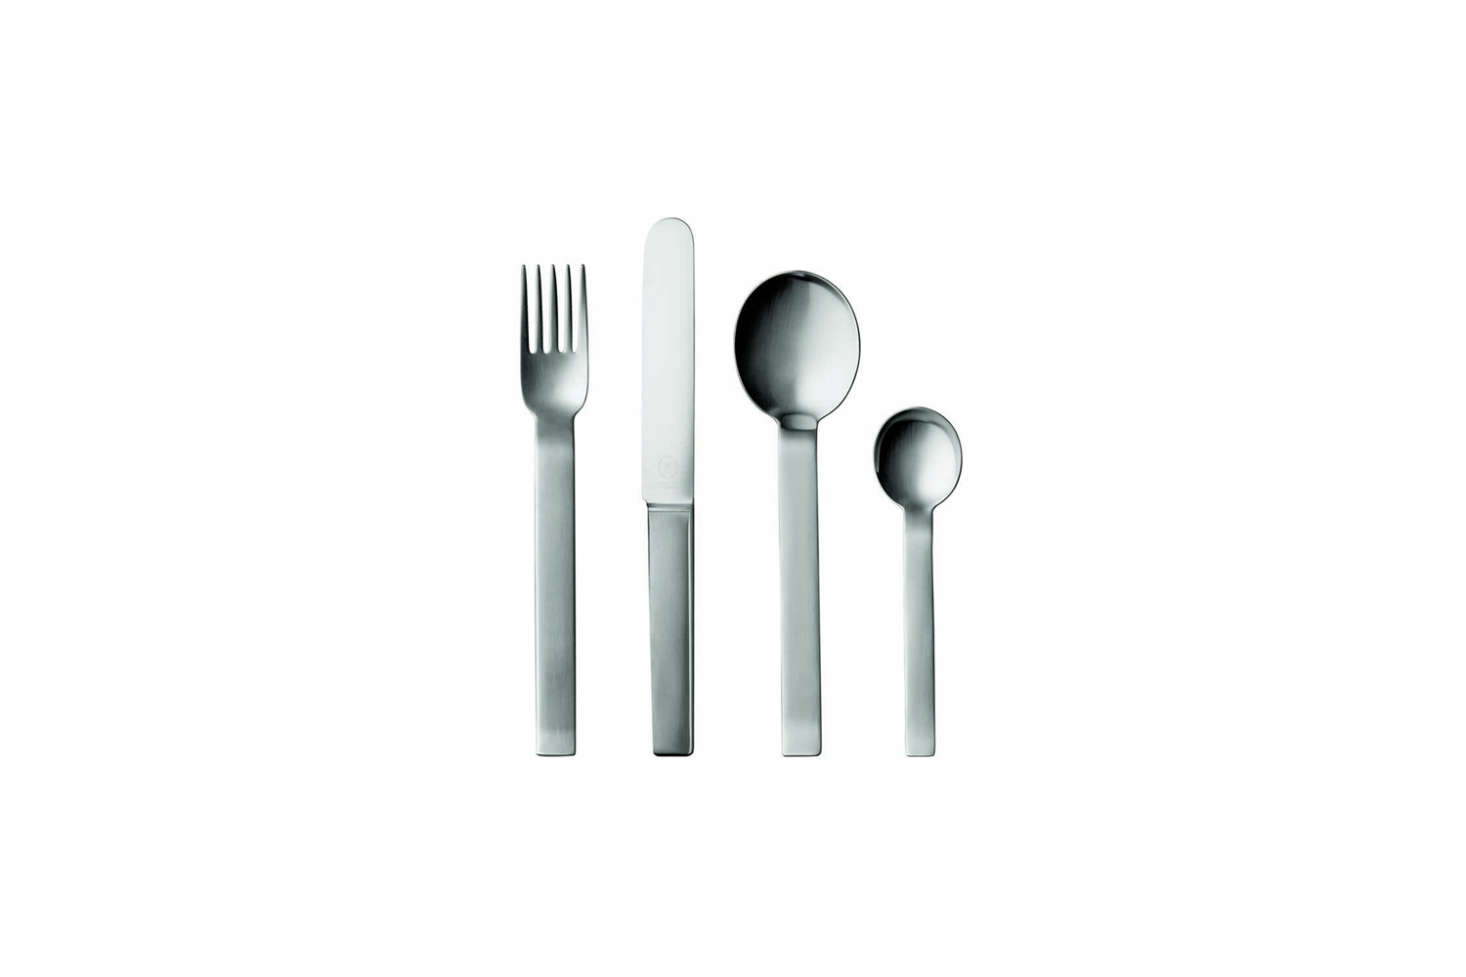 The Pott no. 35 Five-Piece Place Setting was designed by Carl Pott in 79 with a geometric shape and matte finish stainless steel; $4 for the set at Kneen & Co.